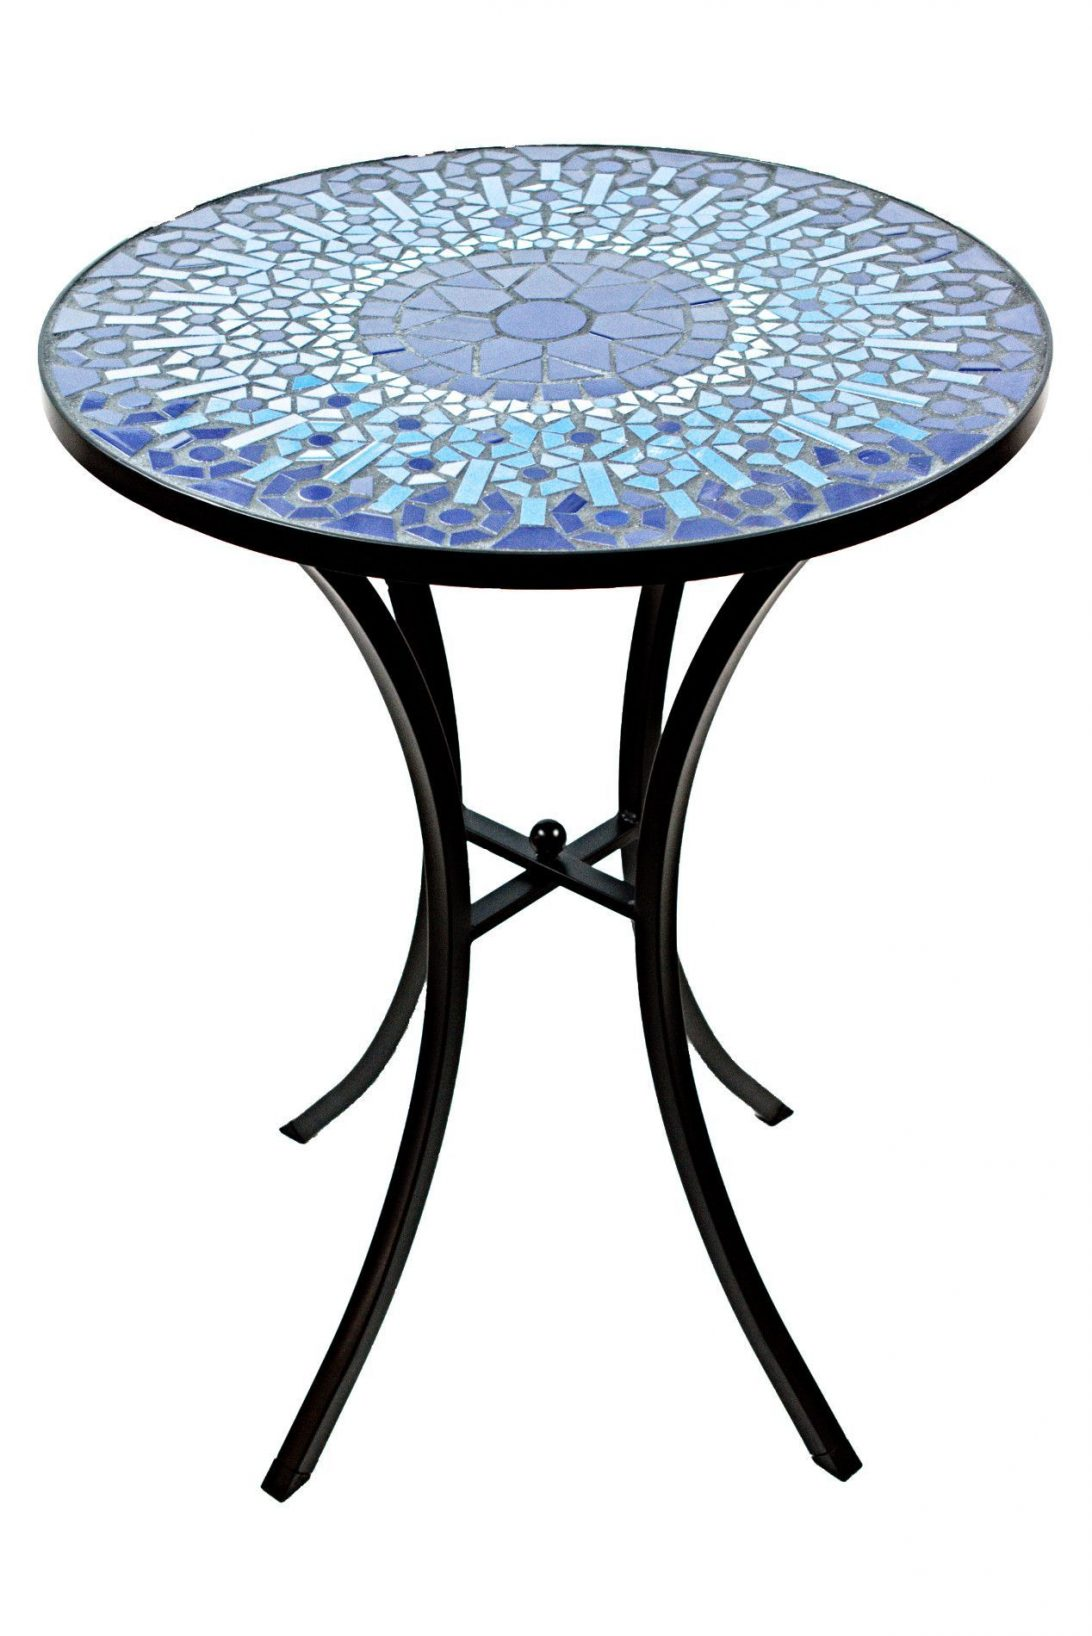 outdoor mosaic accent table zaltana tile side awesome home ikea dining sets making small long pier one imports patio furniture futon target dressing white chairs concrete and wood